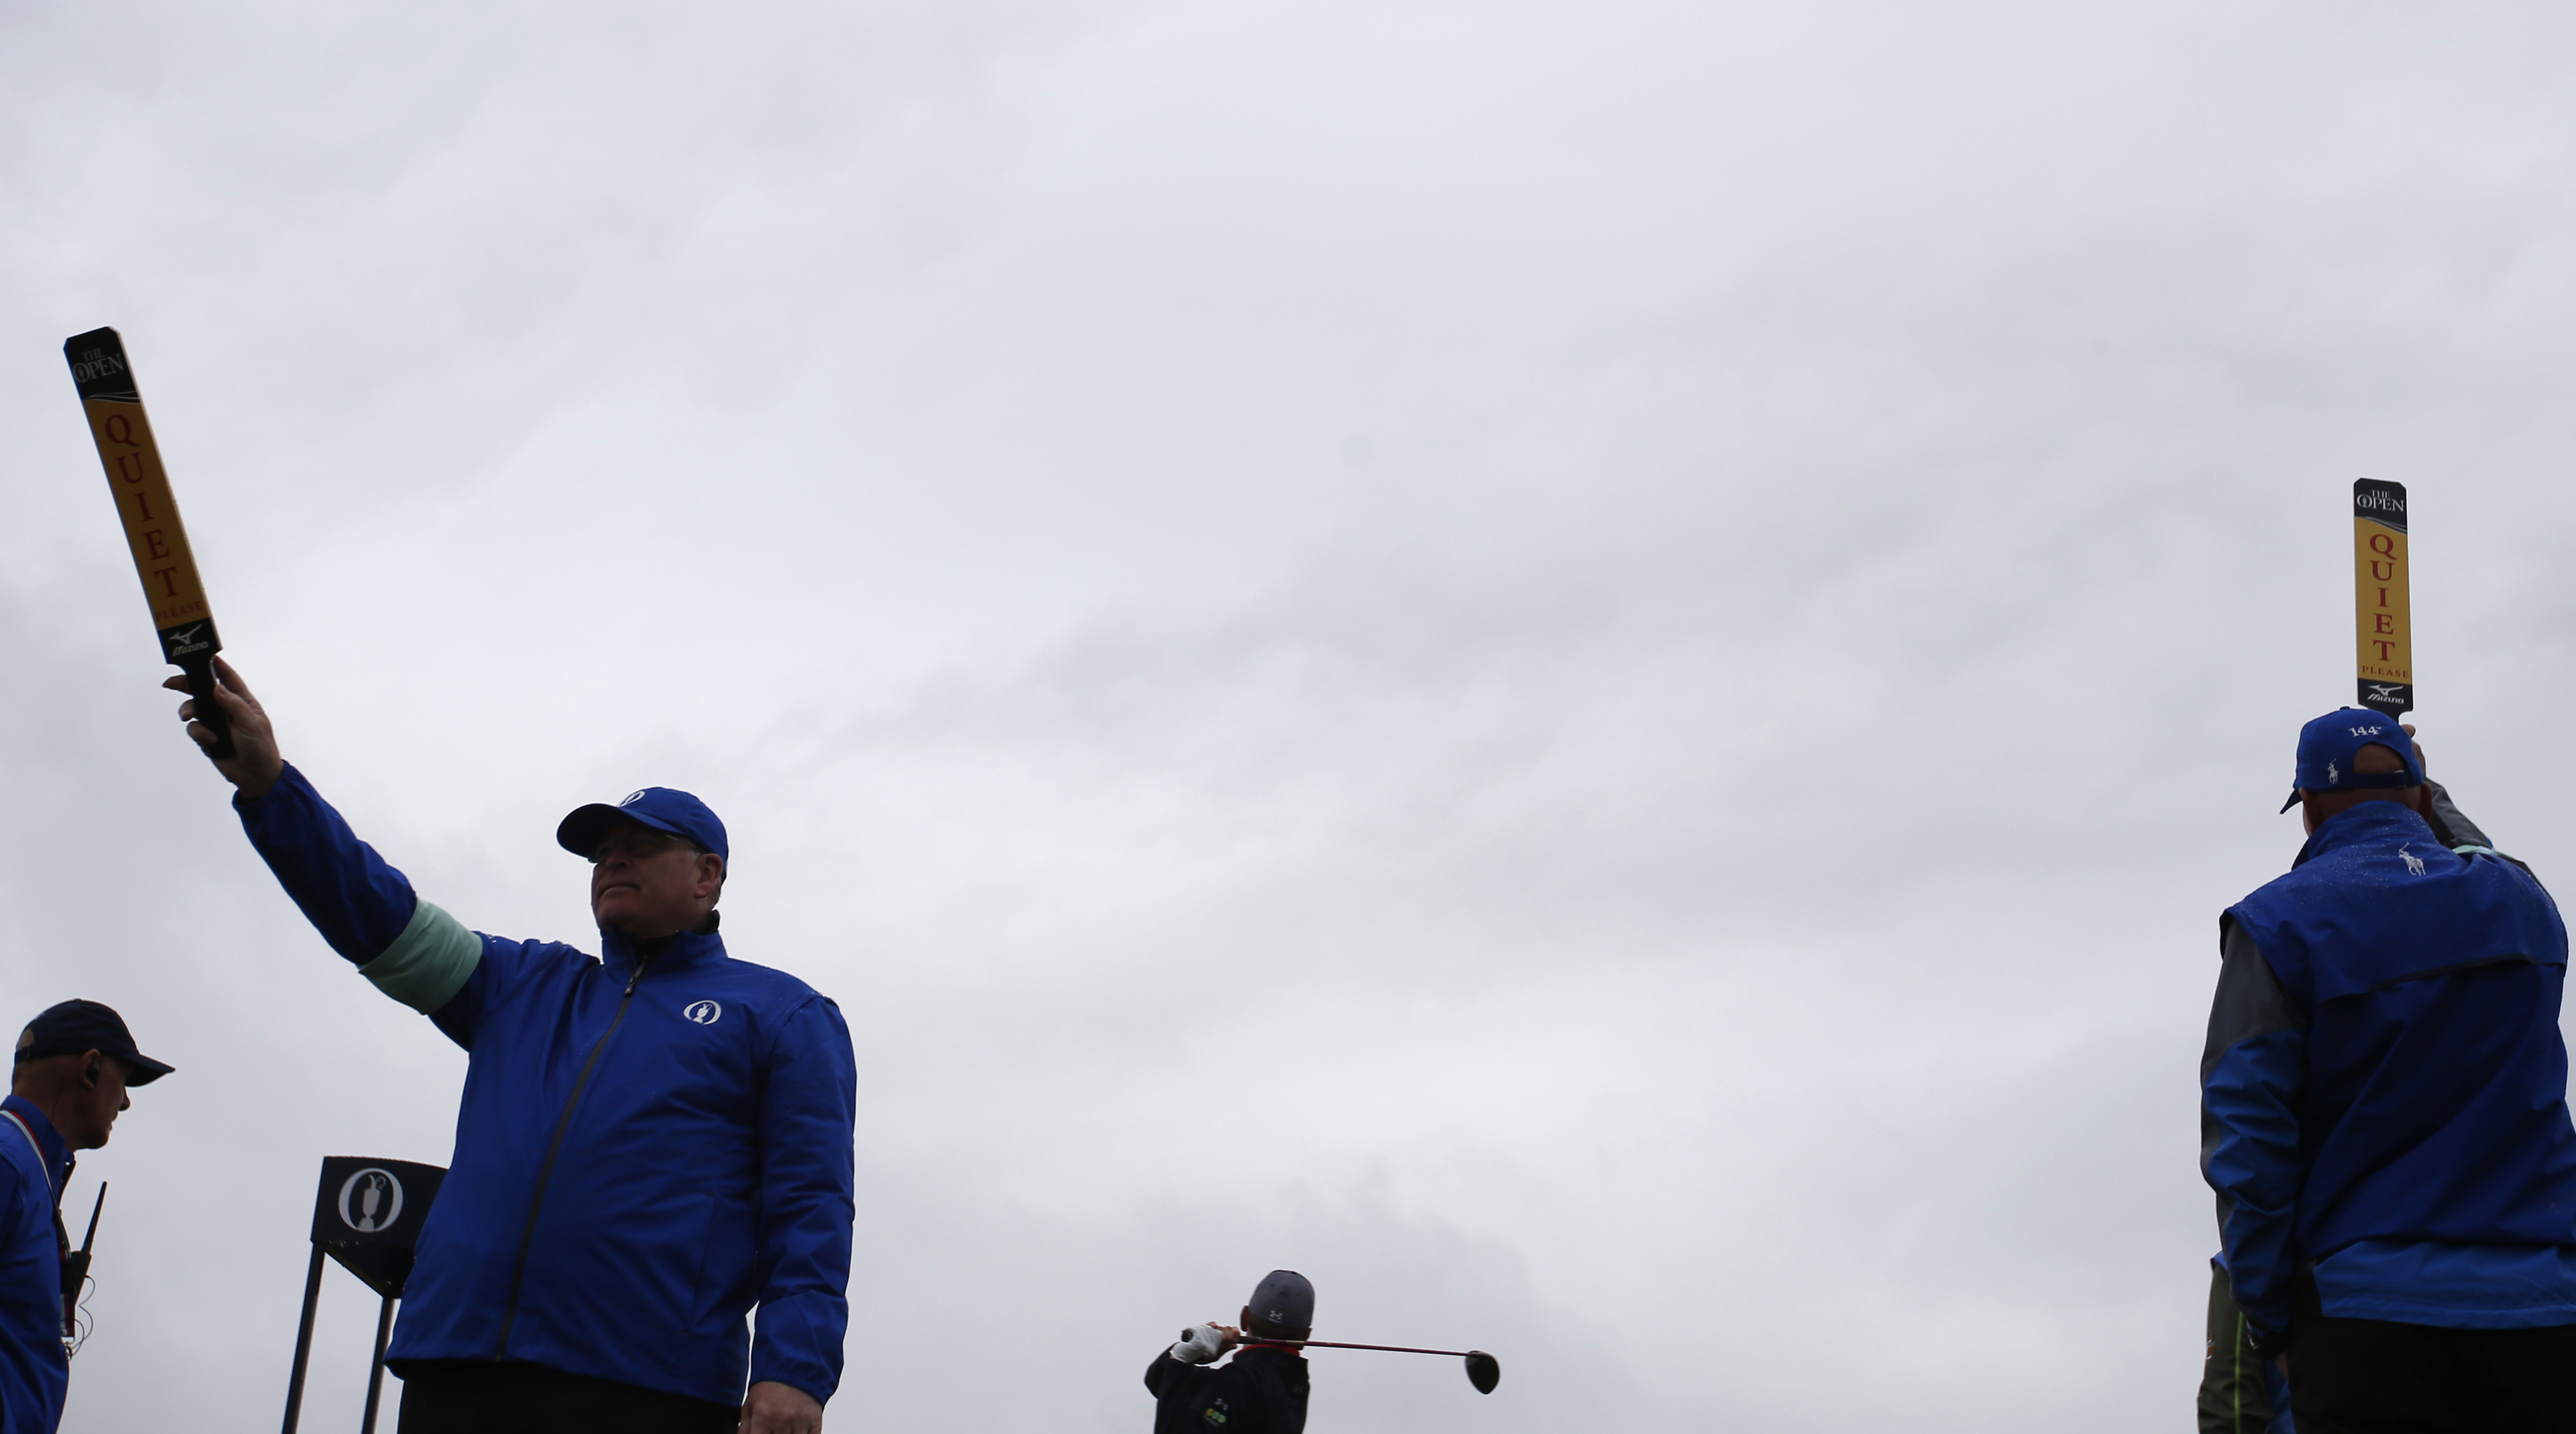 England's Mark Young drives a ball from the fifth tee during a practice round at the British Open Golf Championship at the Old Course, St. Andrews, Scotland, Wednesday, July 15, 2015. (AP Photo/Alastair Grant)